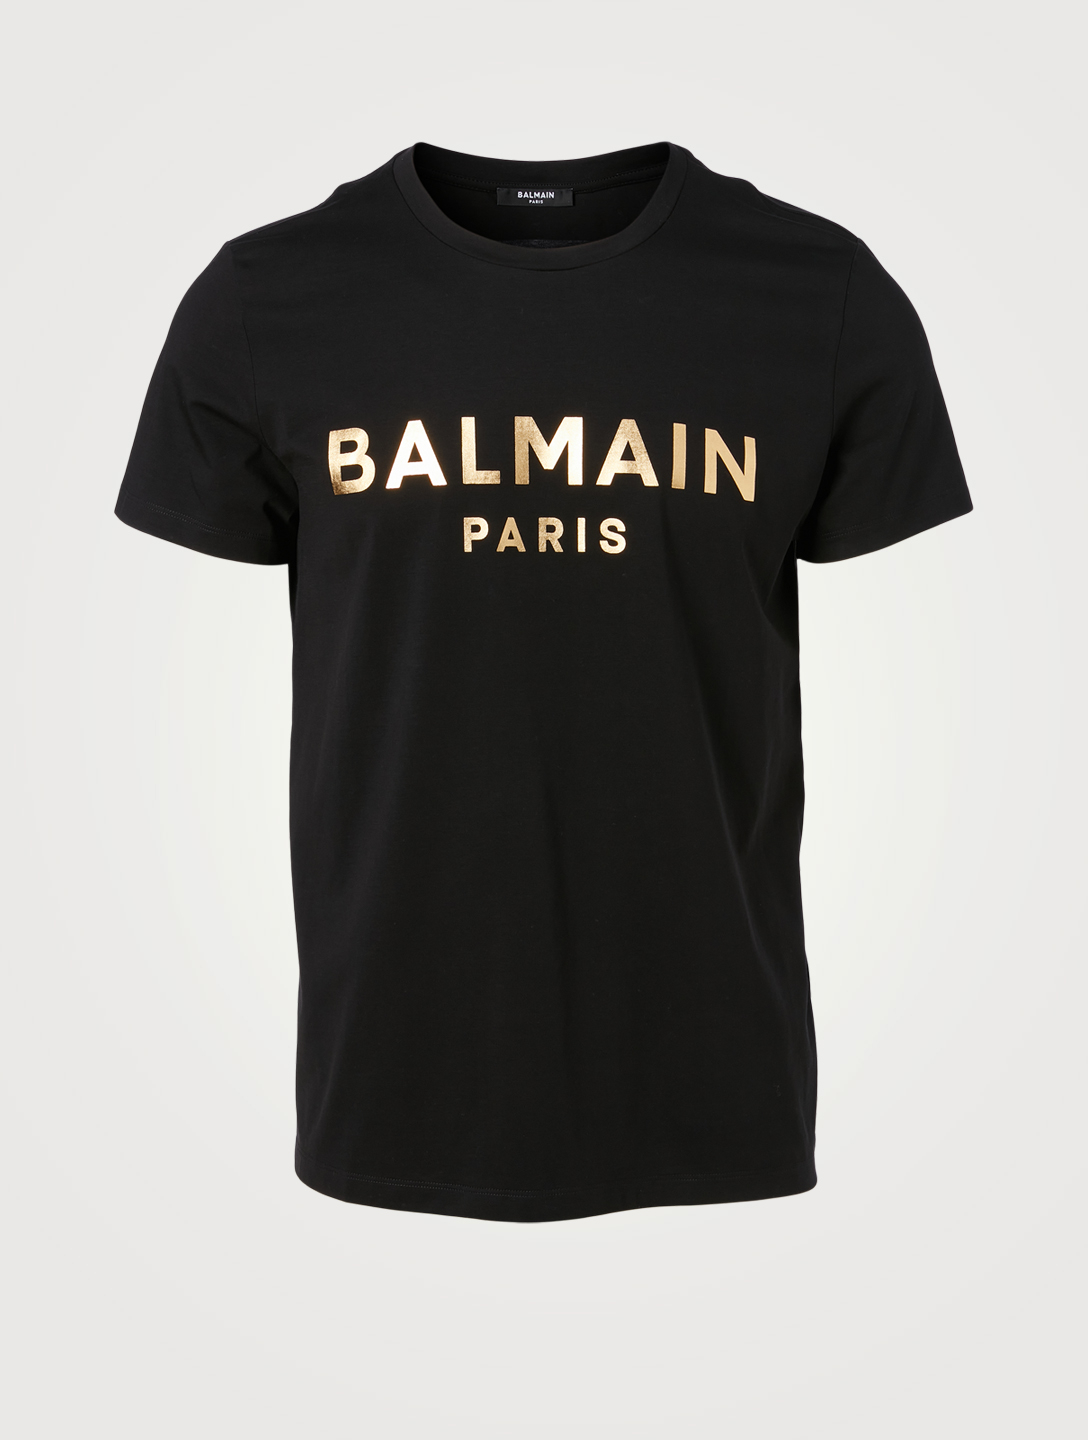 BALMAIN Cotton T-Shirt With Foil Logo Men's Black